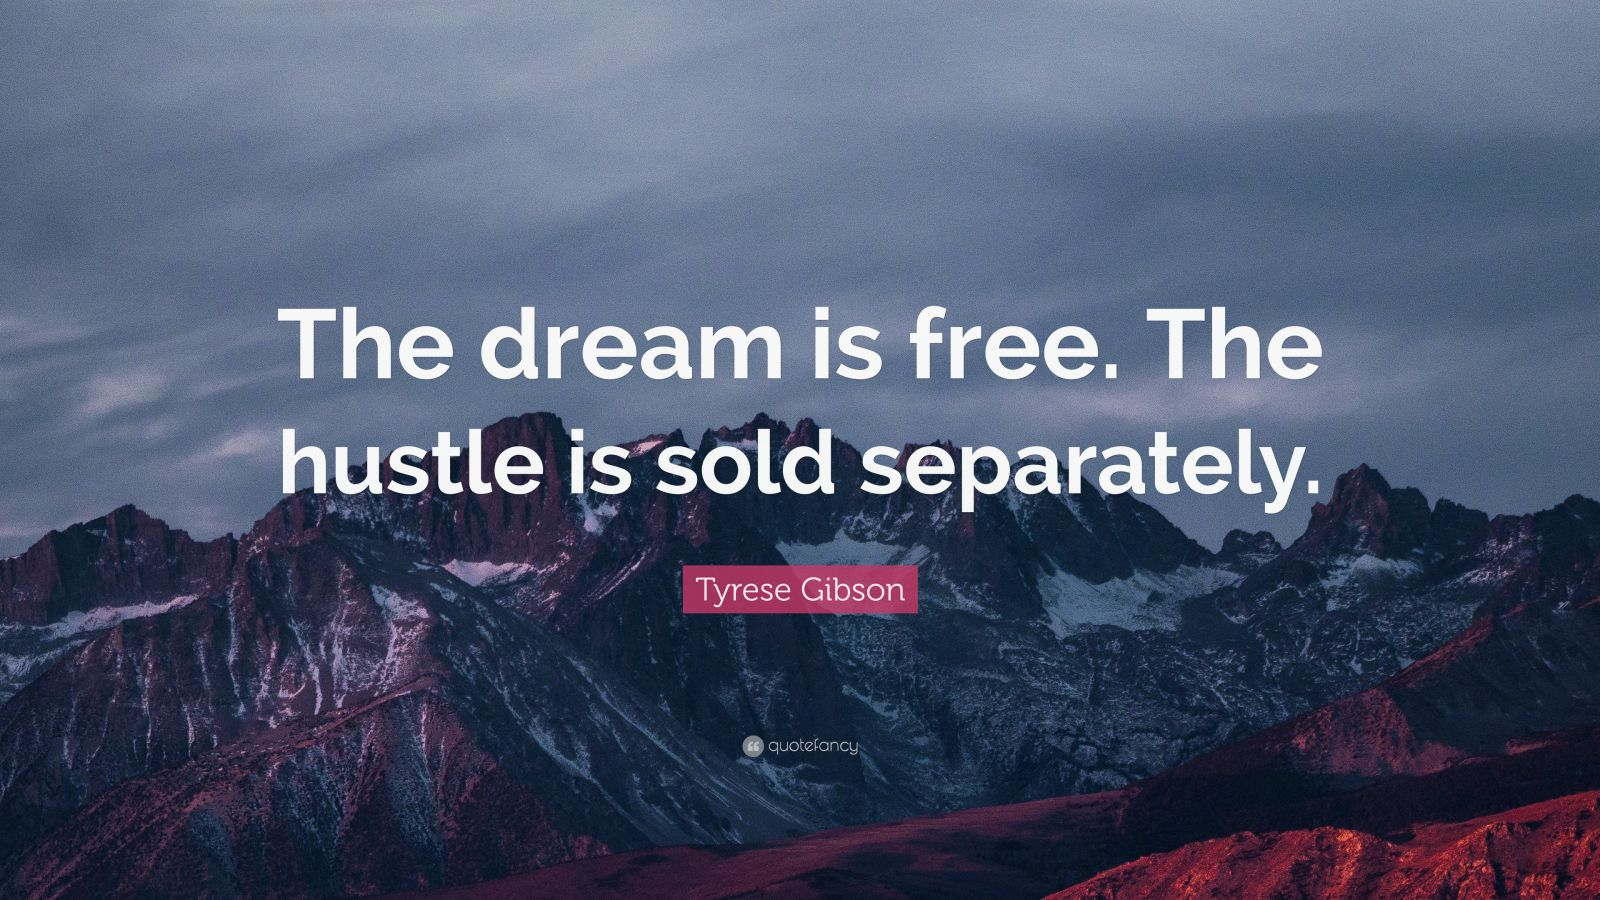 Hustle Quotes Wallpaper Tyrese Gibson Quote The Dream Is Free The Hustle Is